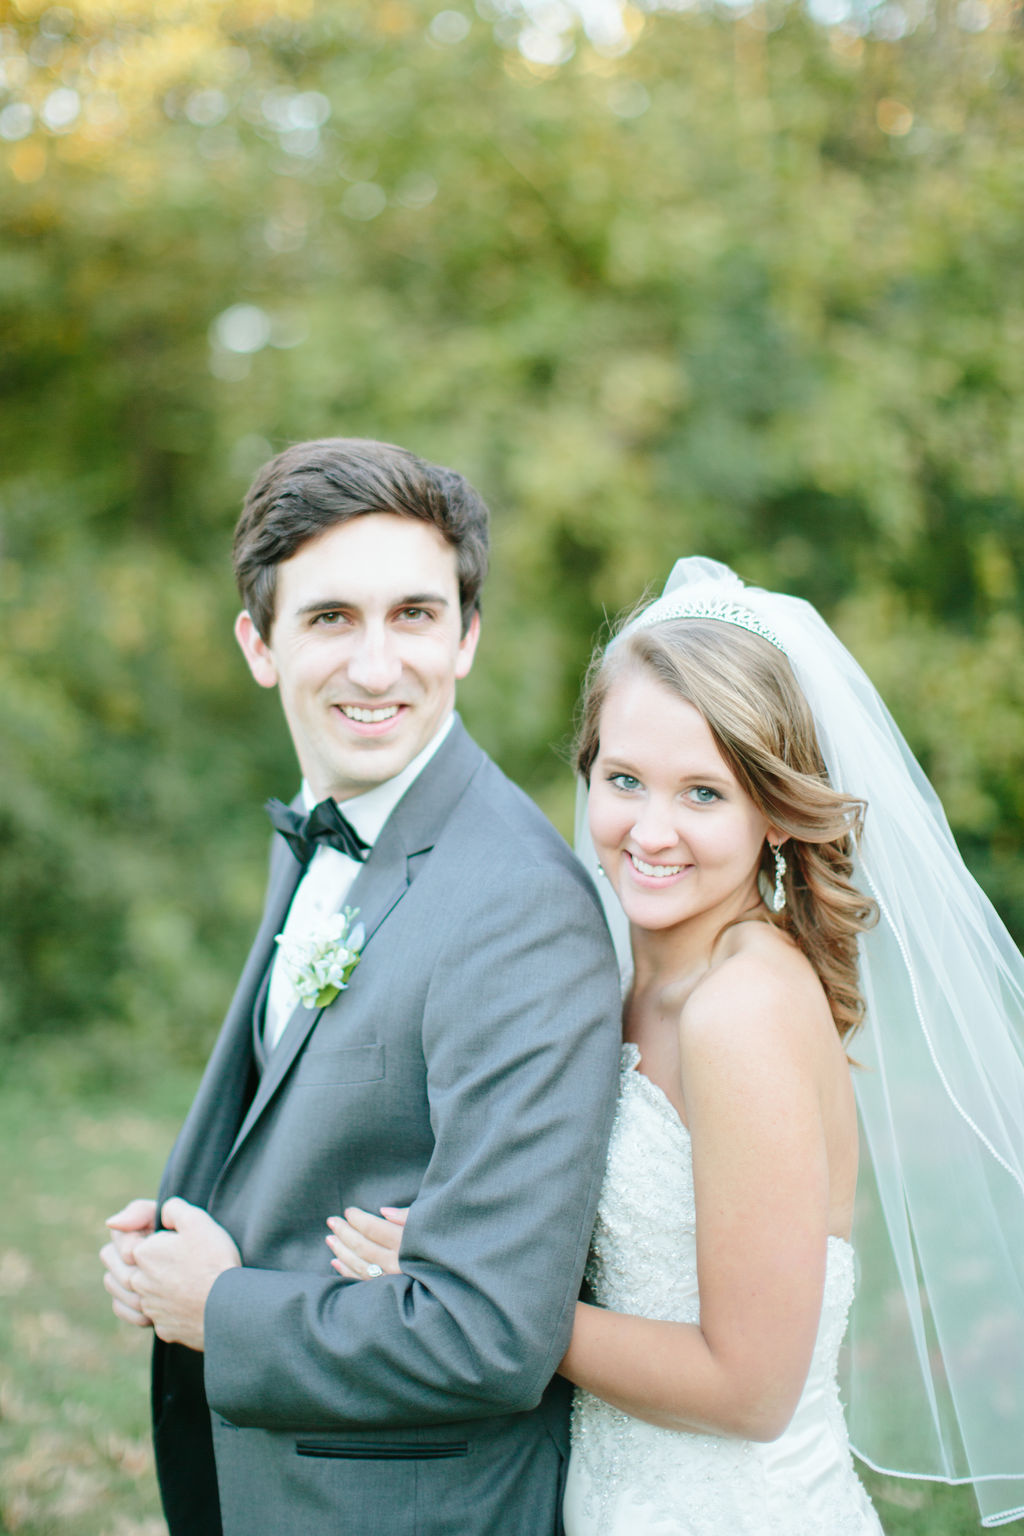 Bride in gown and groom in gray suit on wedding day portraits